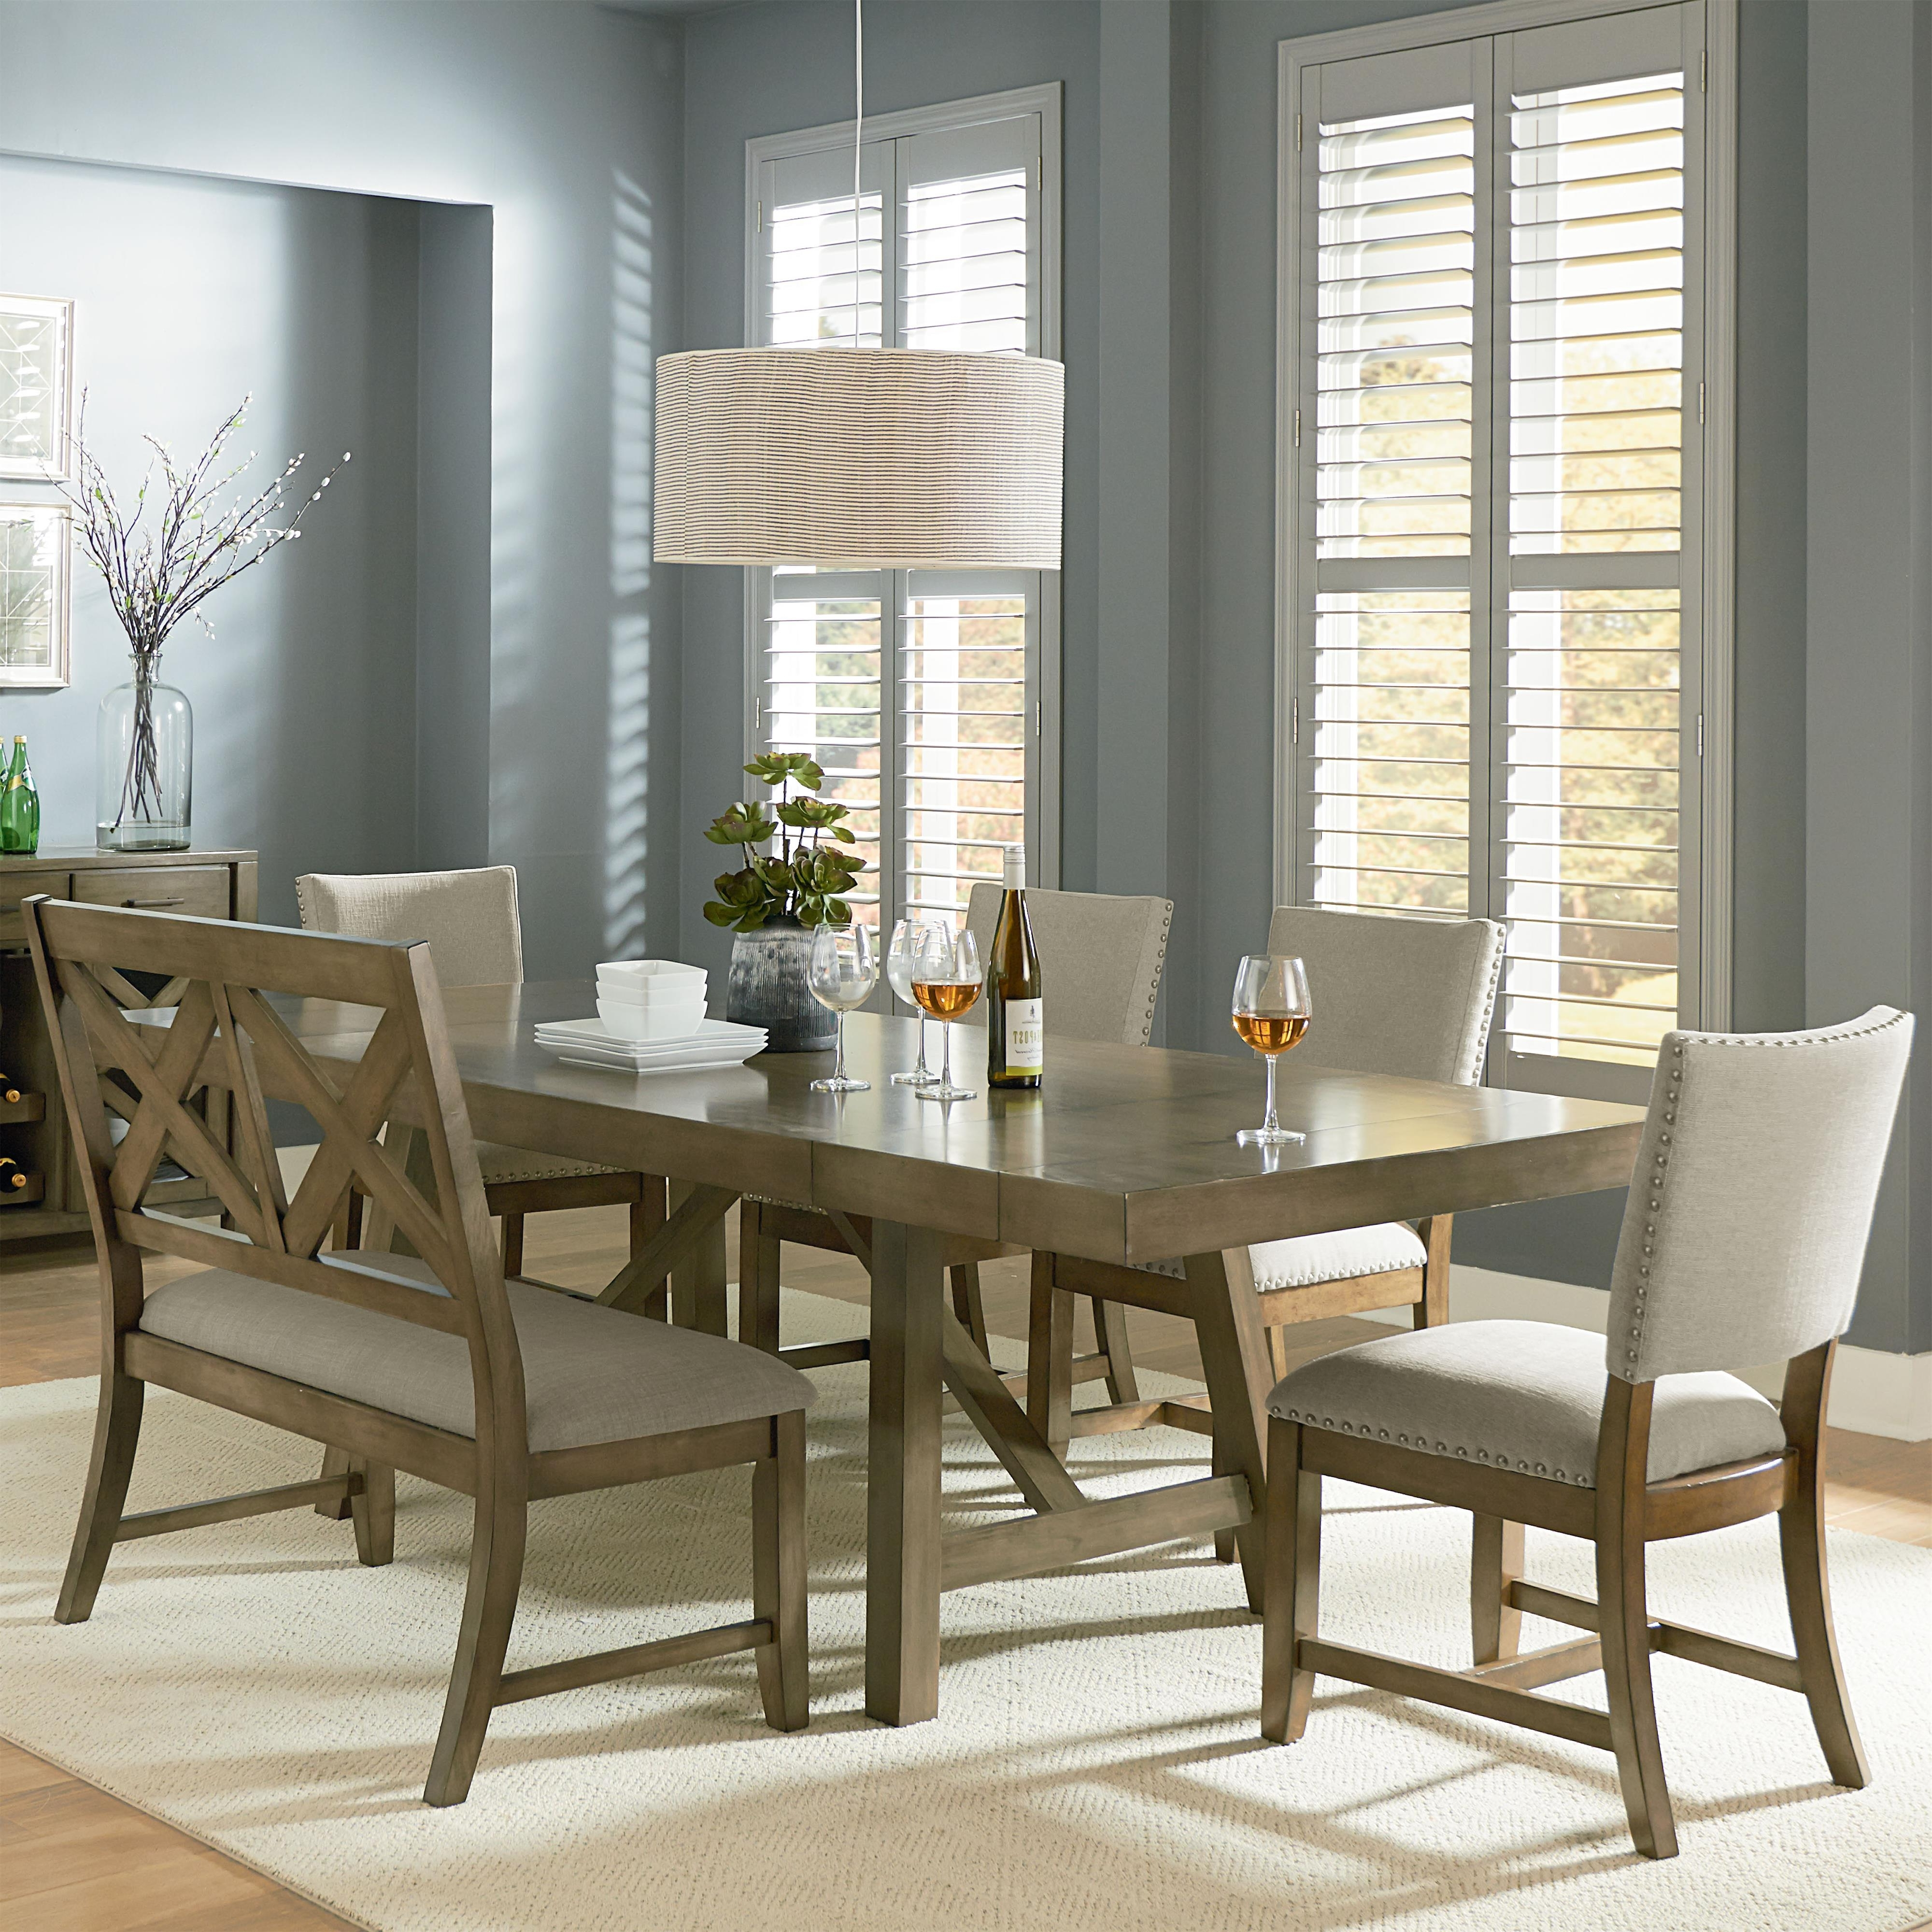 6 Piece Trestle Table Dining Set With Dining Benchstandard Regarding Most Current Parquet 6 Piece Dining Sets (Gallery 3 of 25)